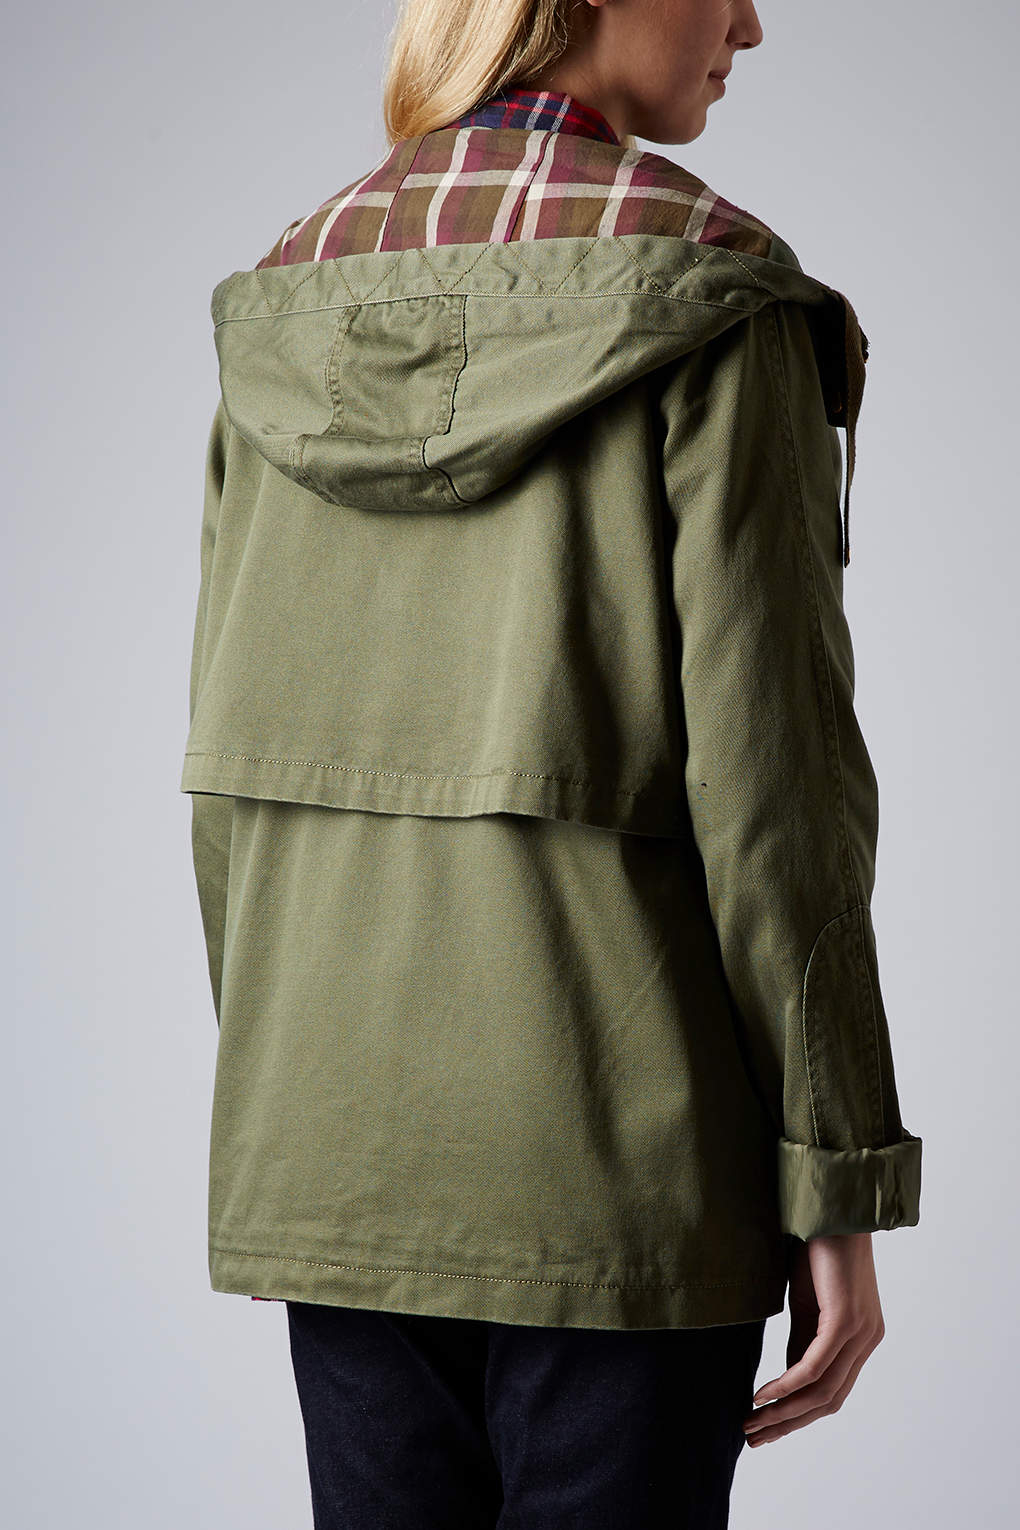 Topshop Maternity Hooded Lightweight Jacket in Natural | Lyst